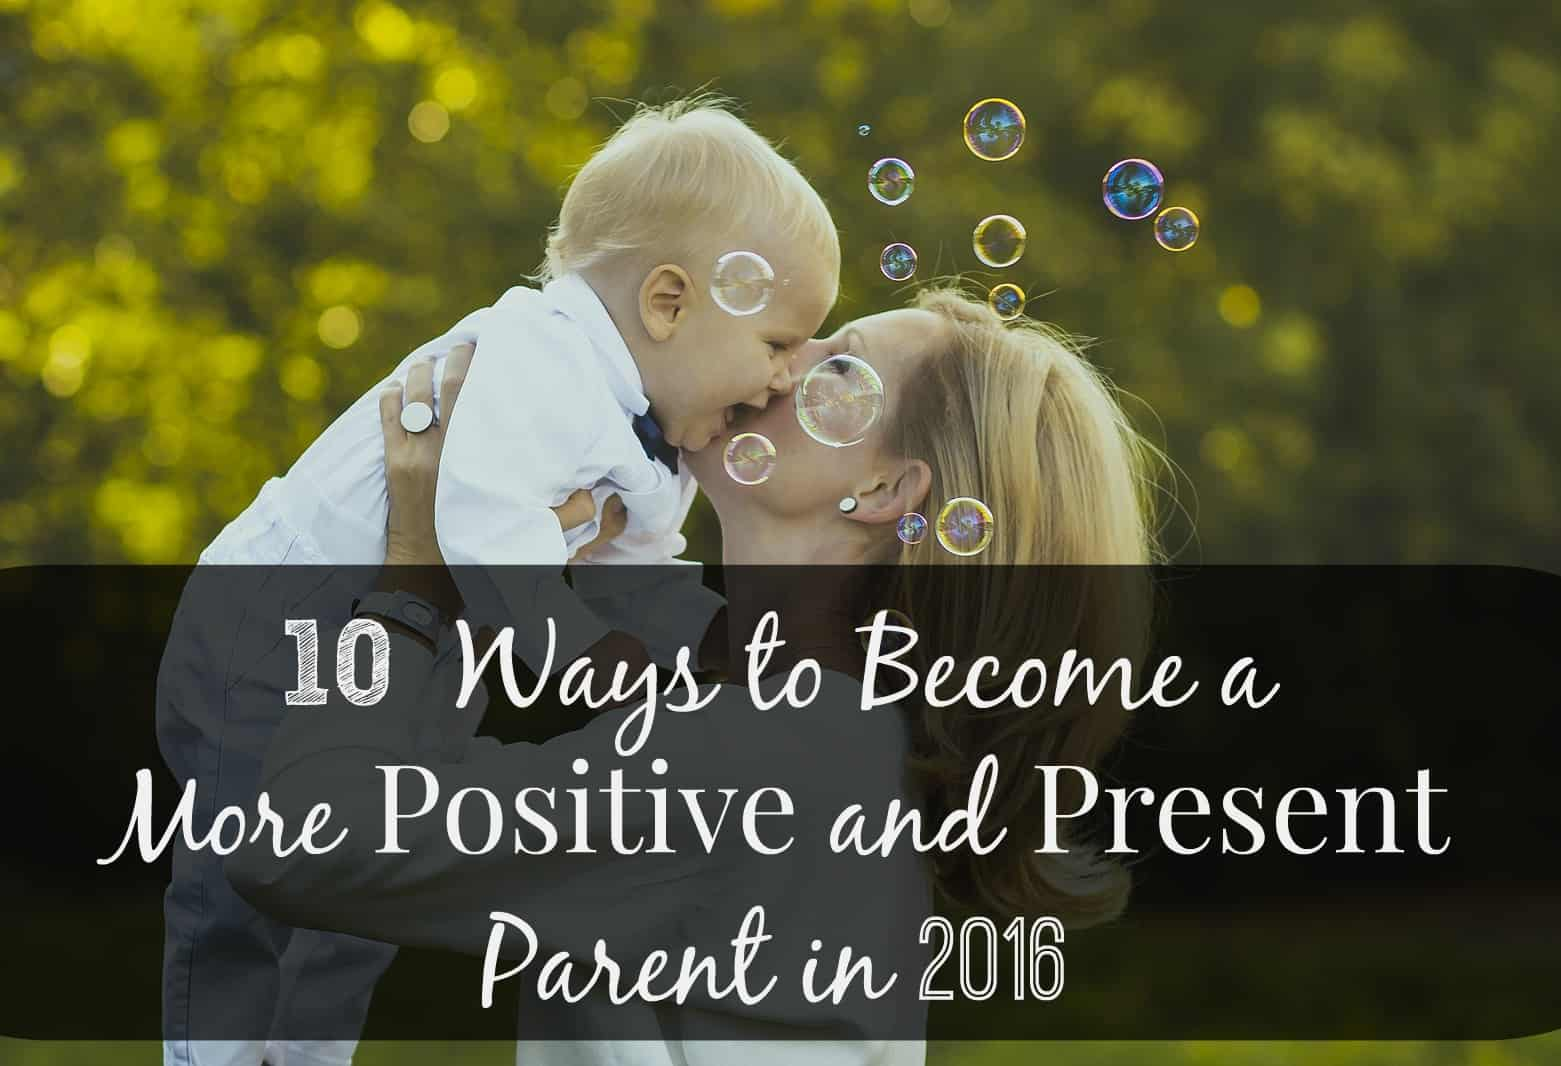 10 Ways to Become a More Positive and Present Parent in 2016